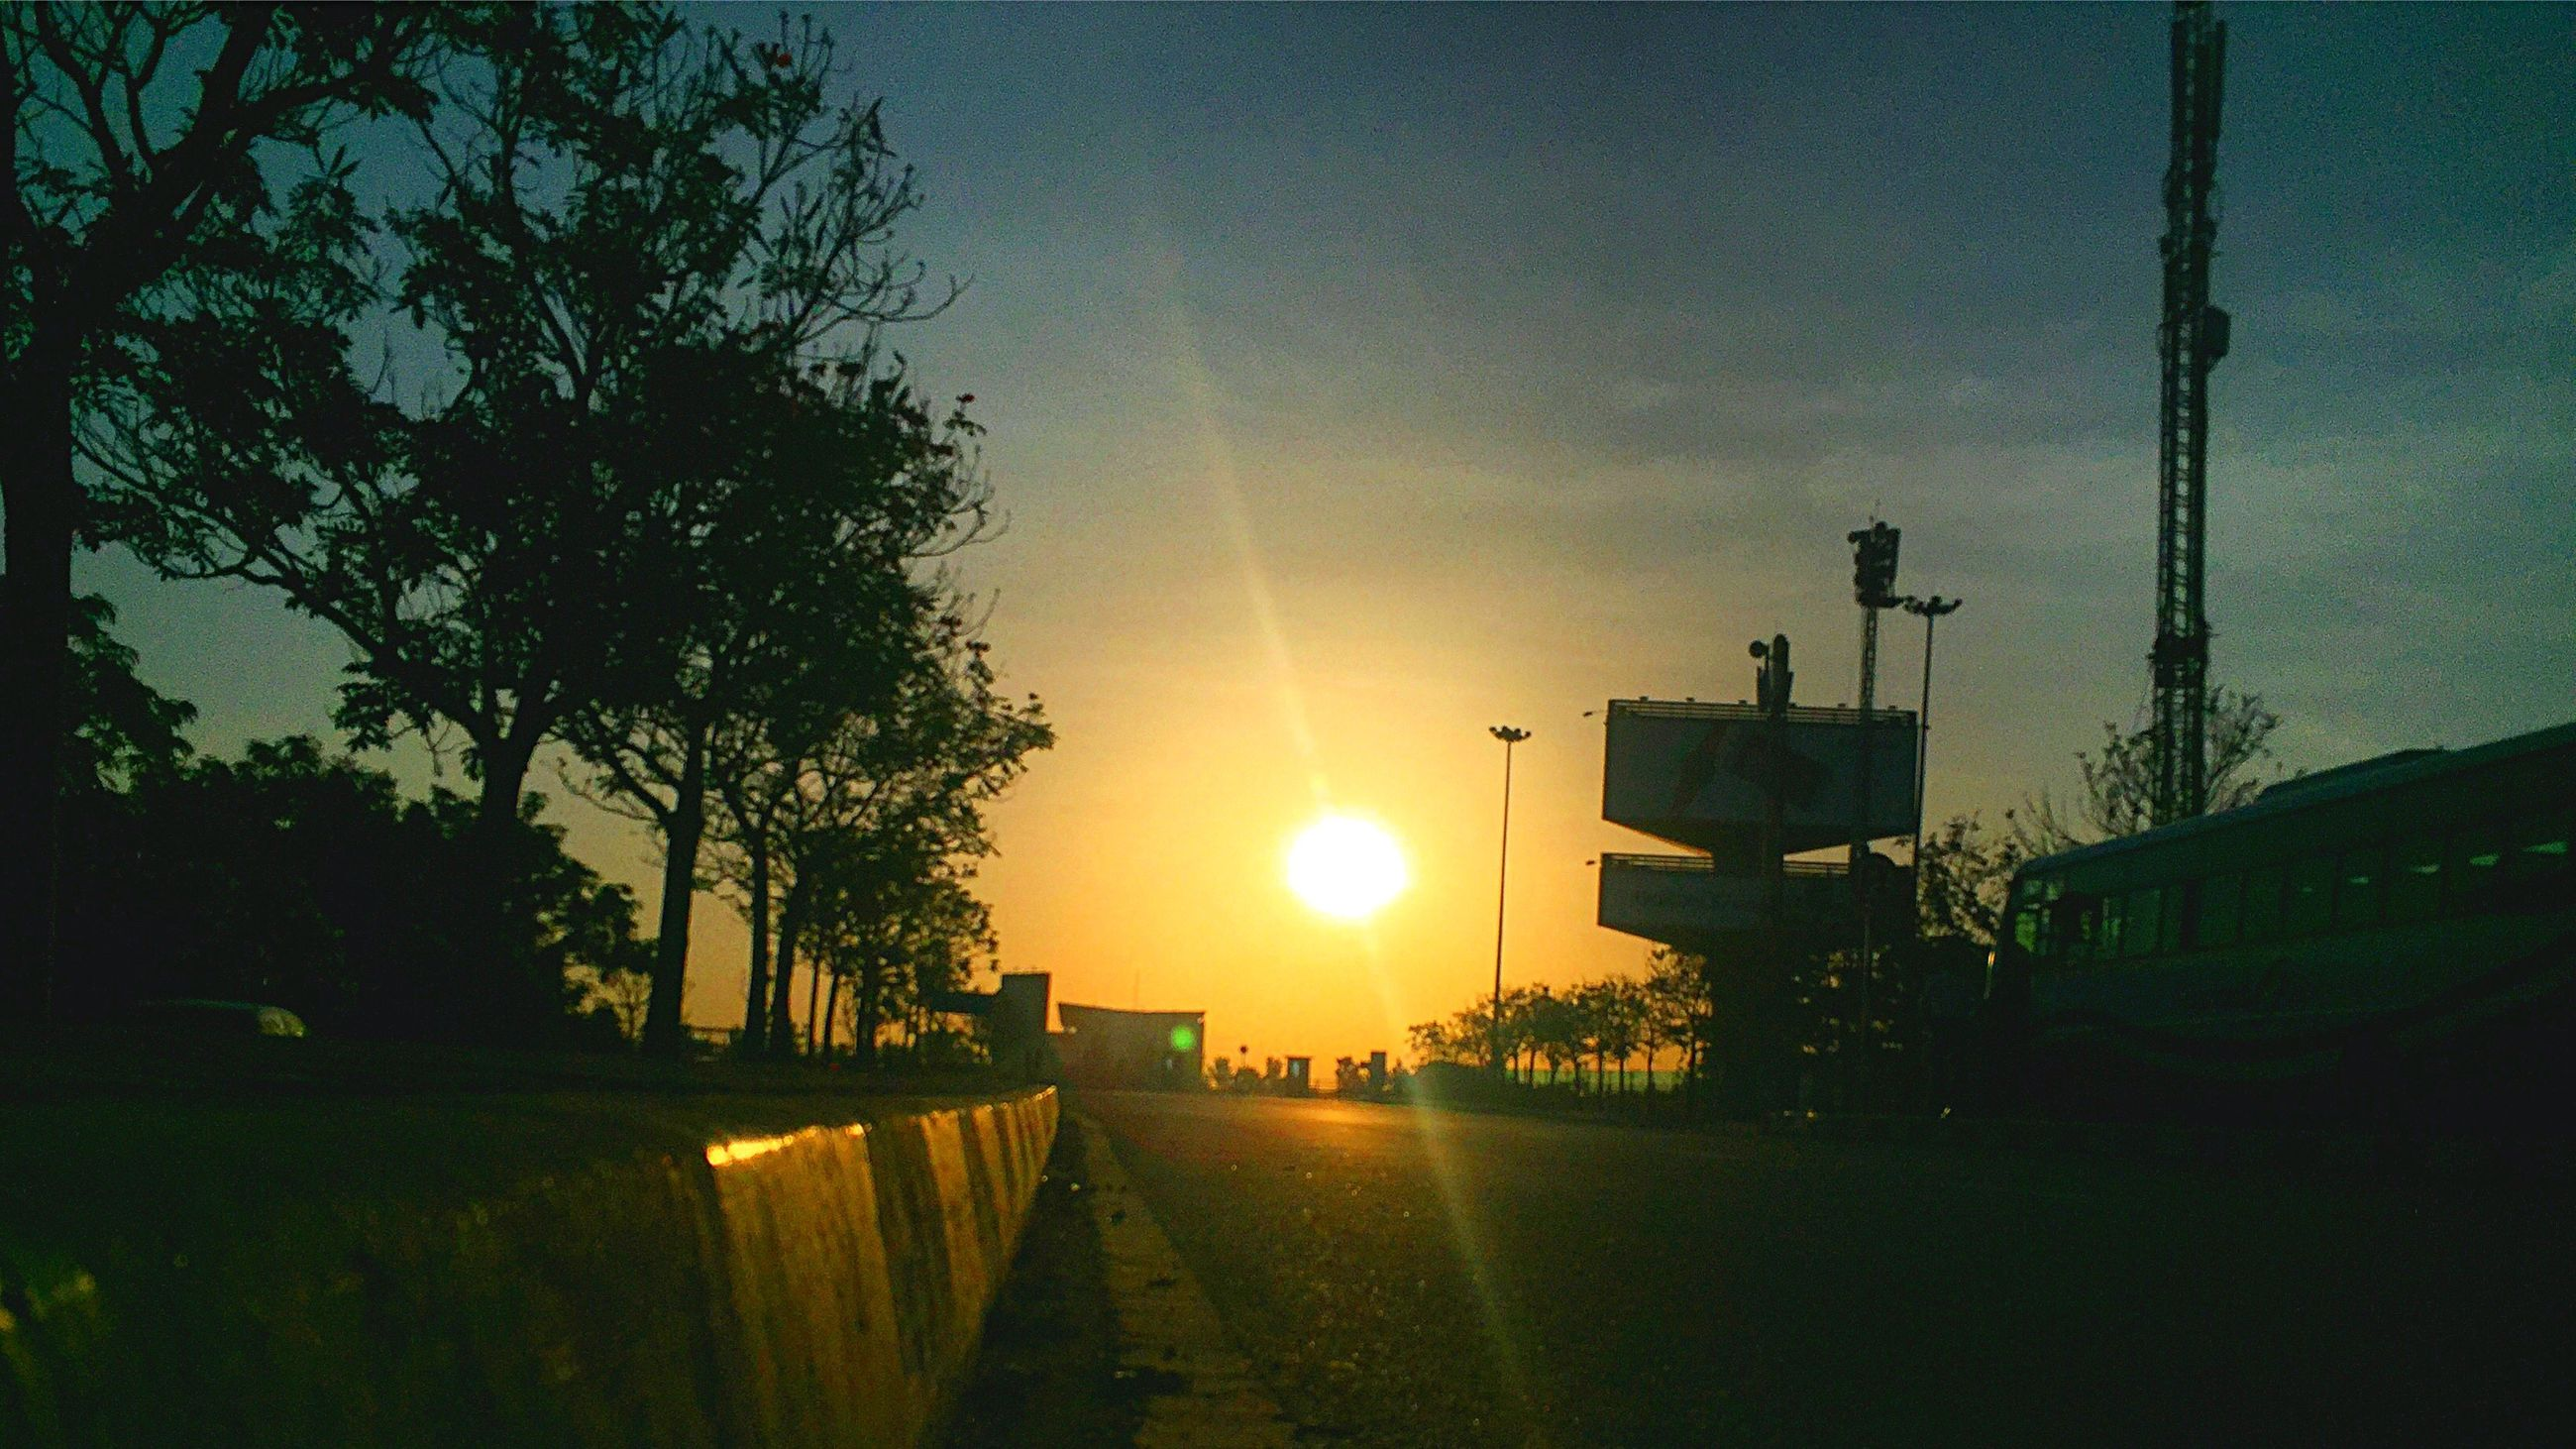 sunset, tree, transportation, mode of transport, sky, sun, outdoors, land vehicle, nature, the way forward, beauty in nature, no people, day